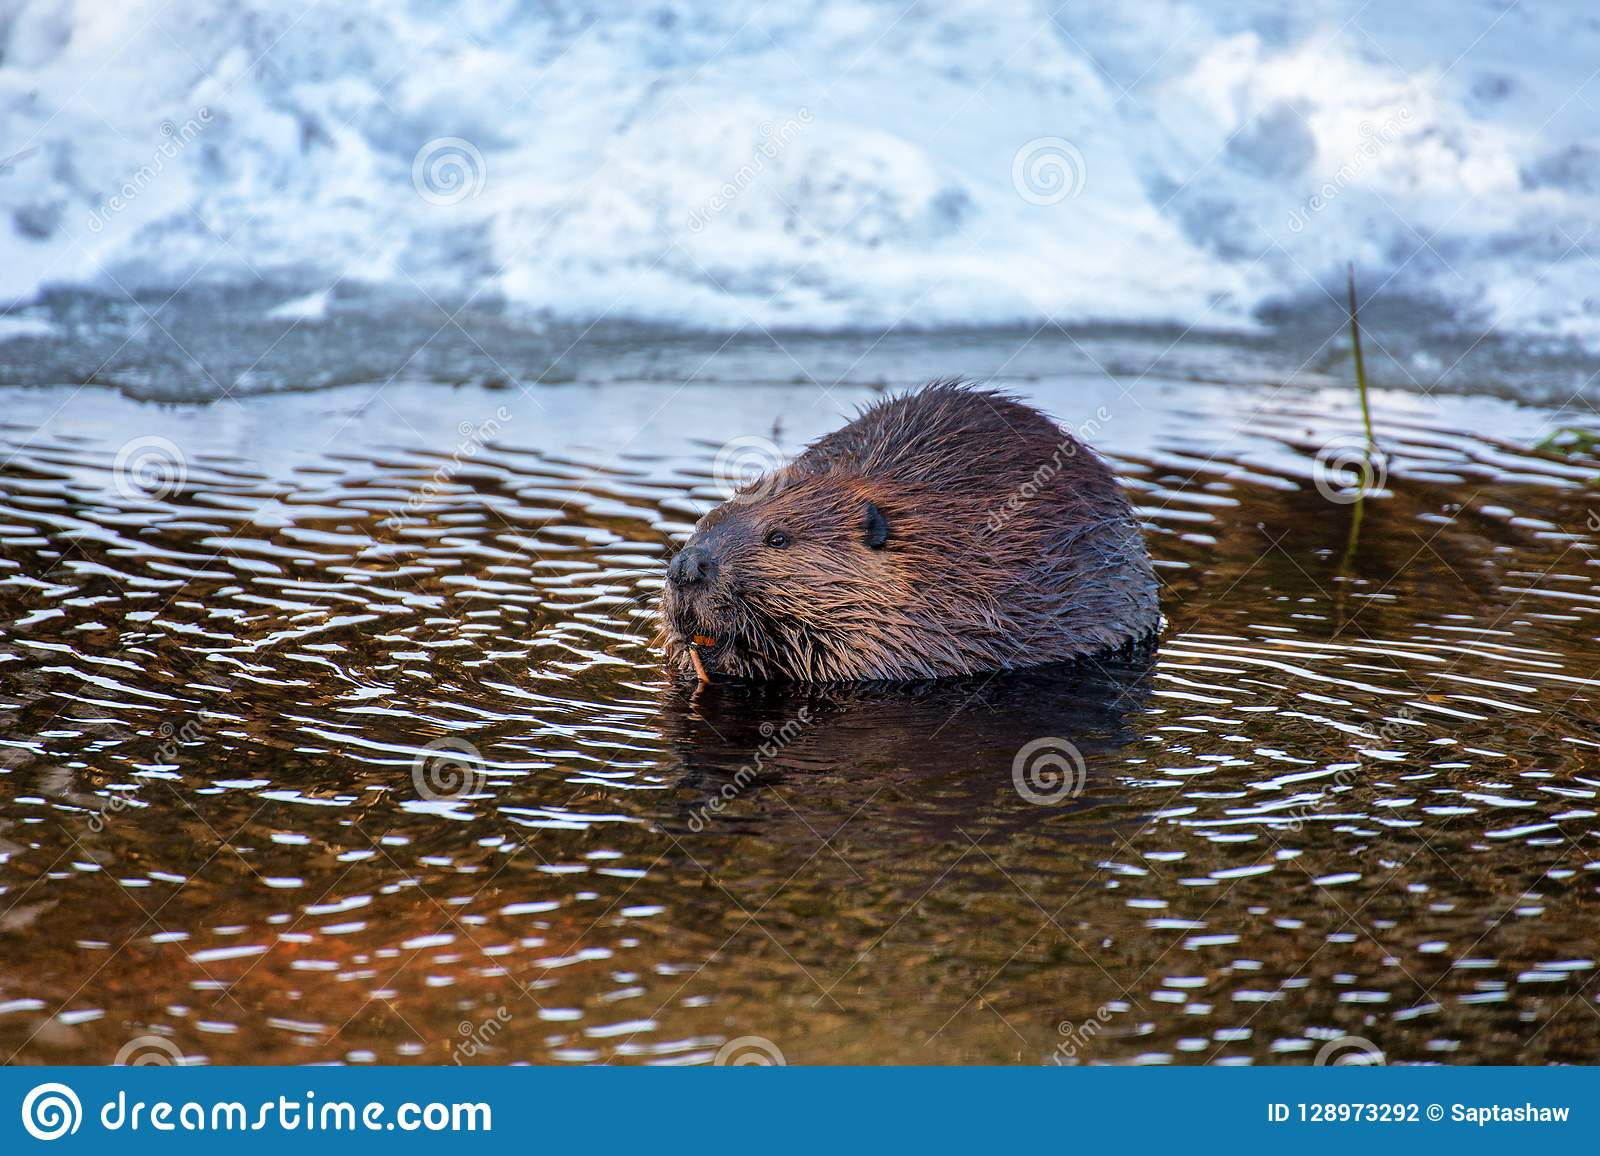 a beaver snacking on a stick in water stock photo image of stick Beaver in Pushing Water a beaver in water chewing a stick in winter in an ontario provincial park